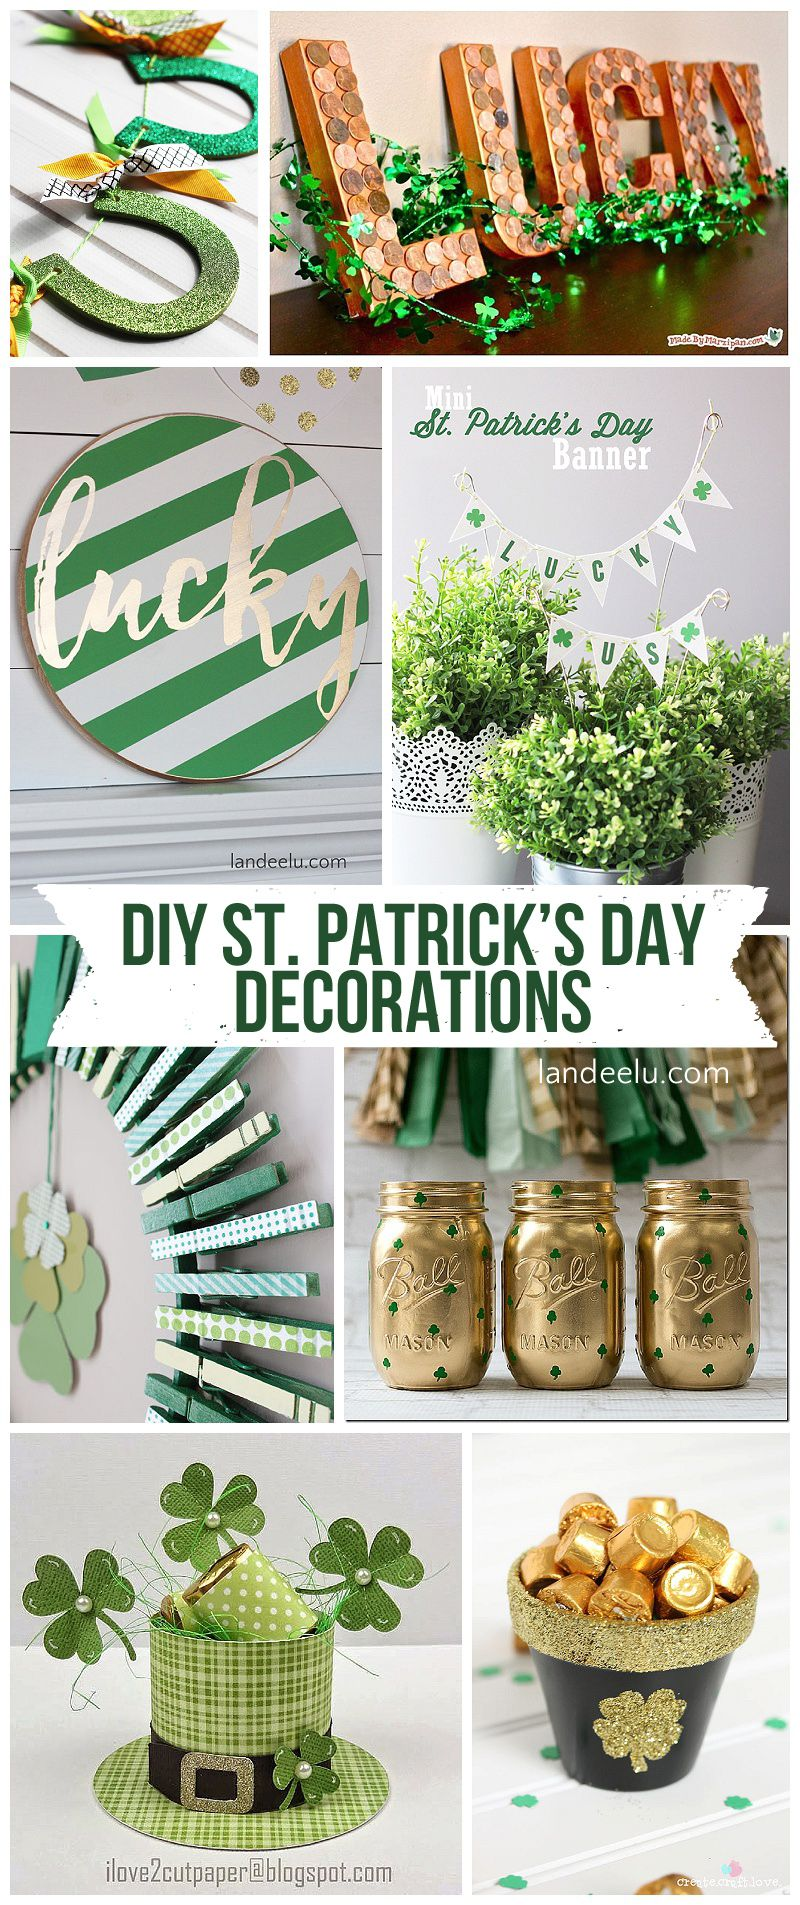 can s easy ideas and free st decorations crafts you these day home love printables decor use patricks patrick for